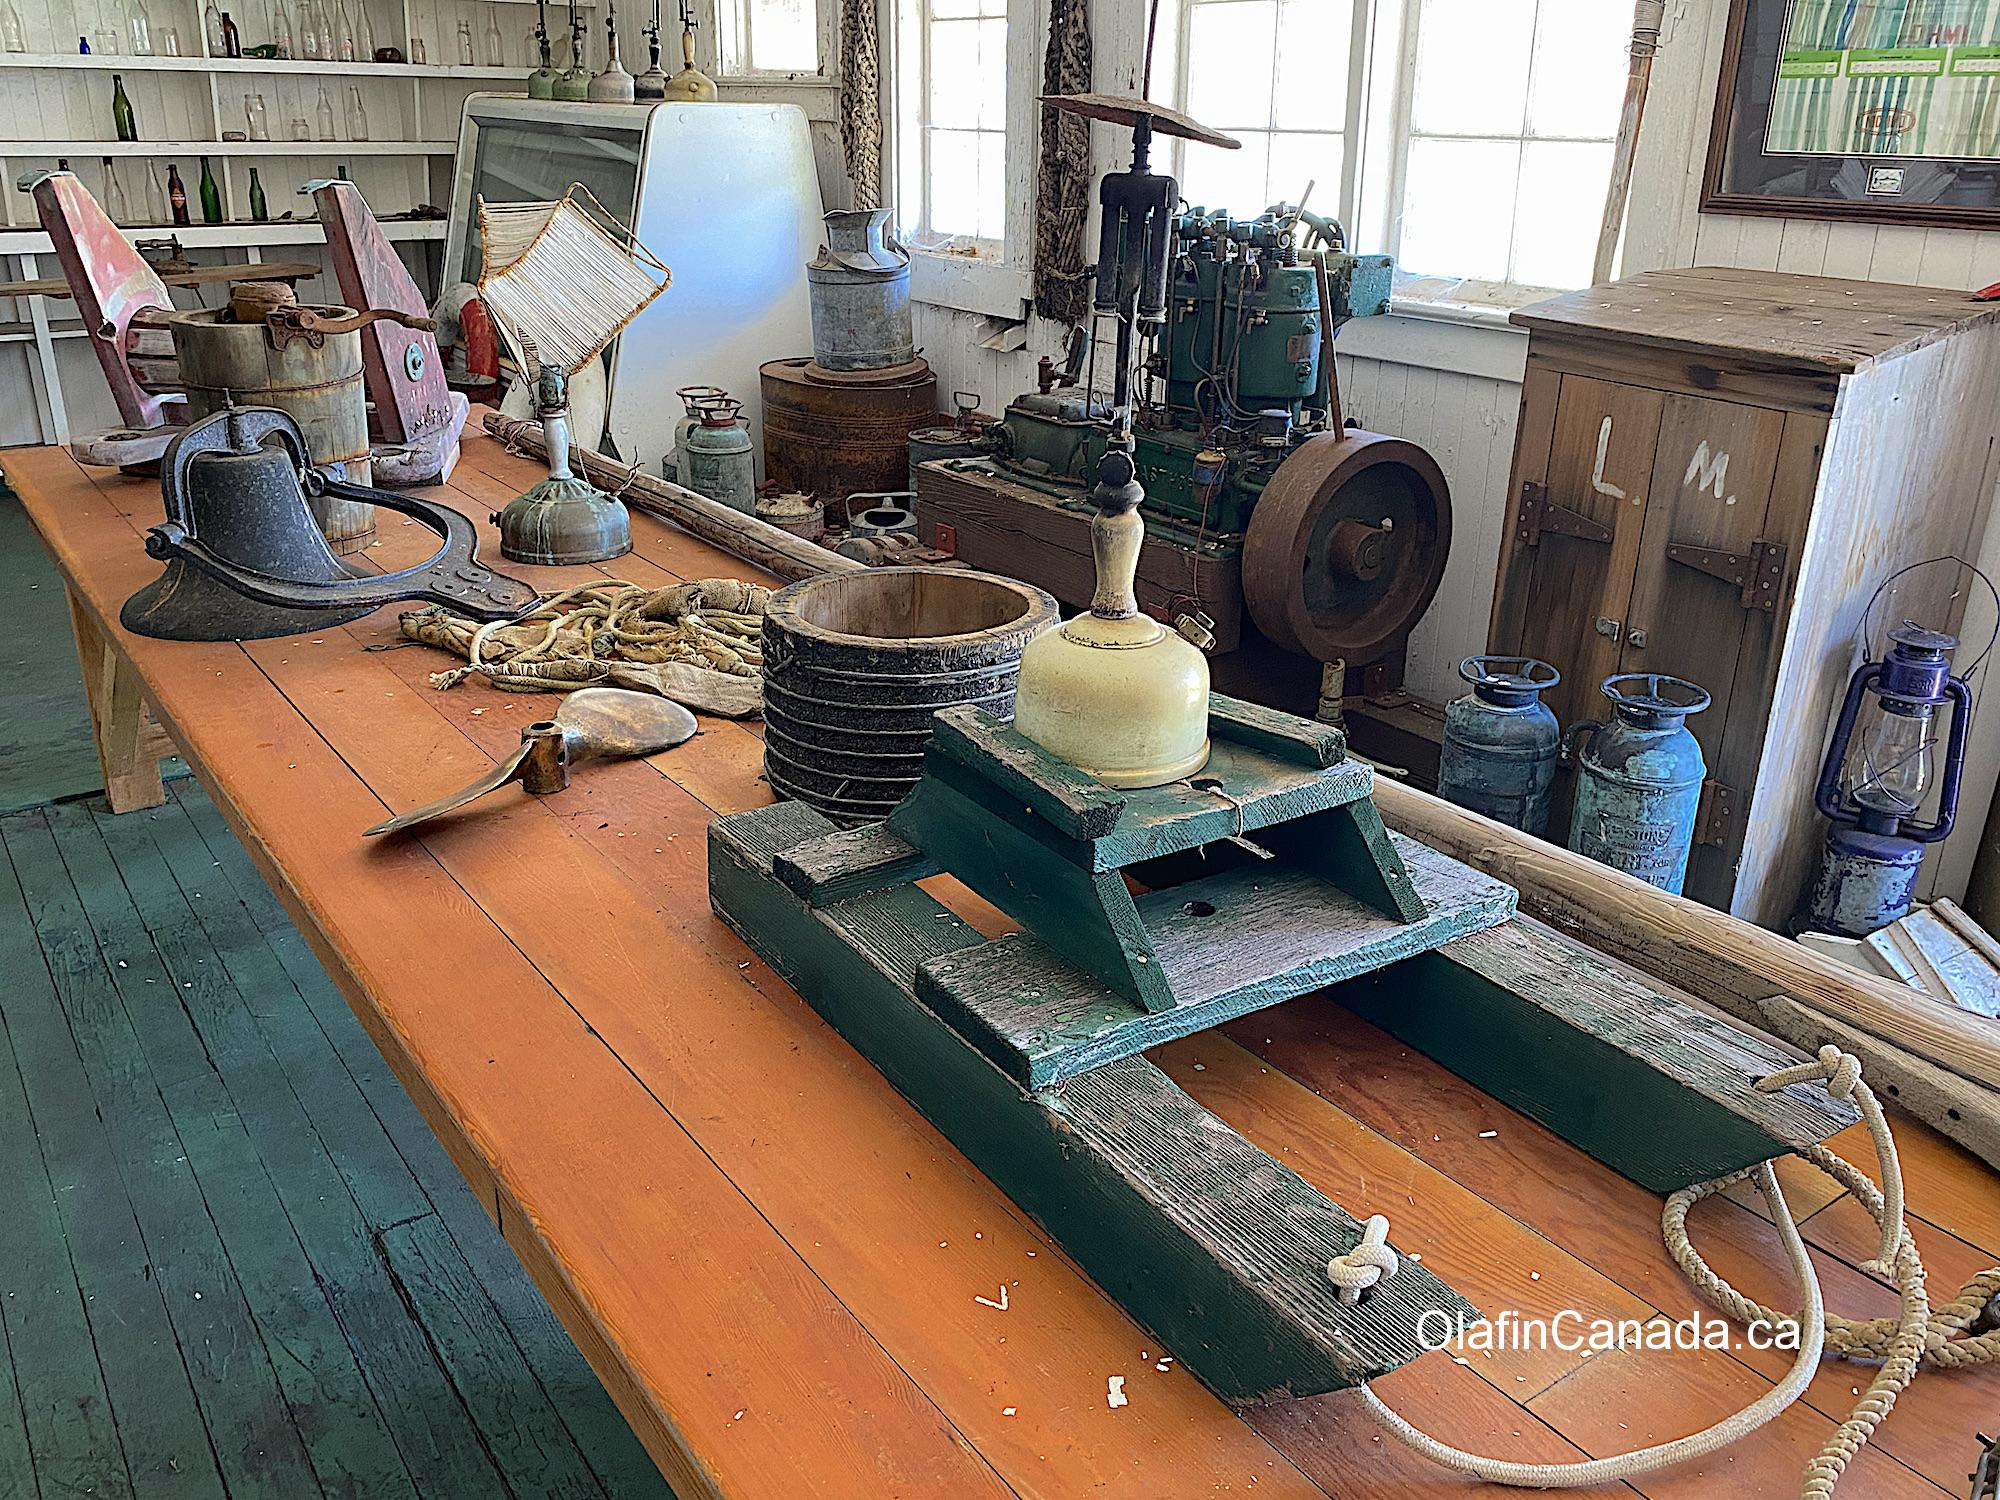 Items in the shop at the Tallheo Cannery in Bella Coola #olafincanada #britishcolumbia #discoverbc #abandonedbc #tallheocannery #bellacoola